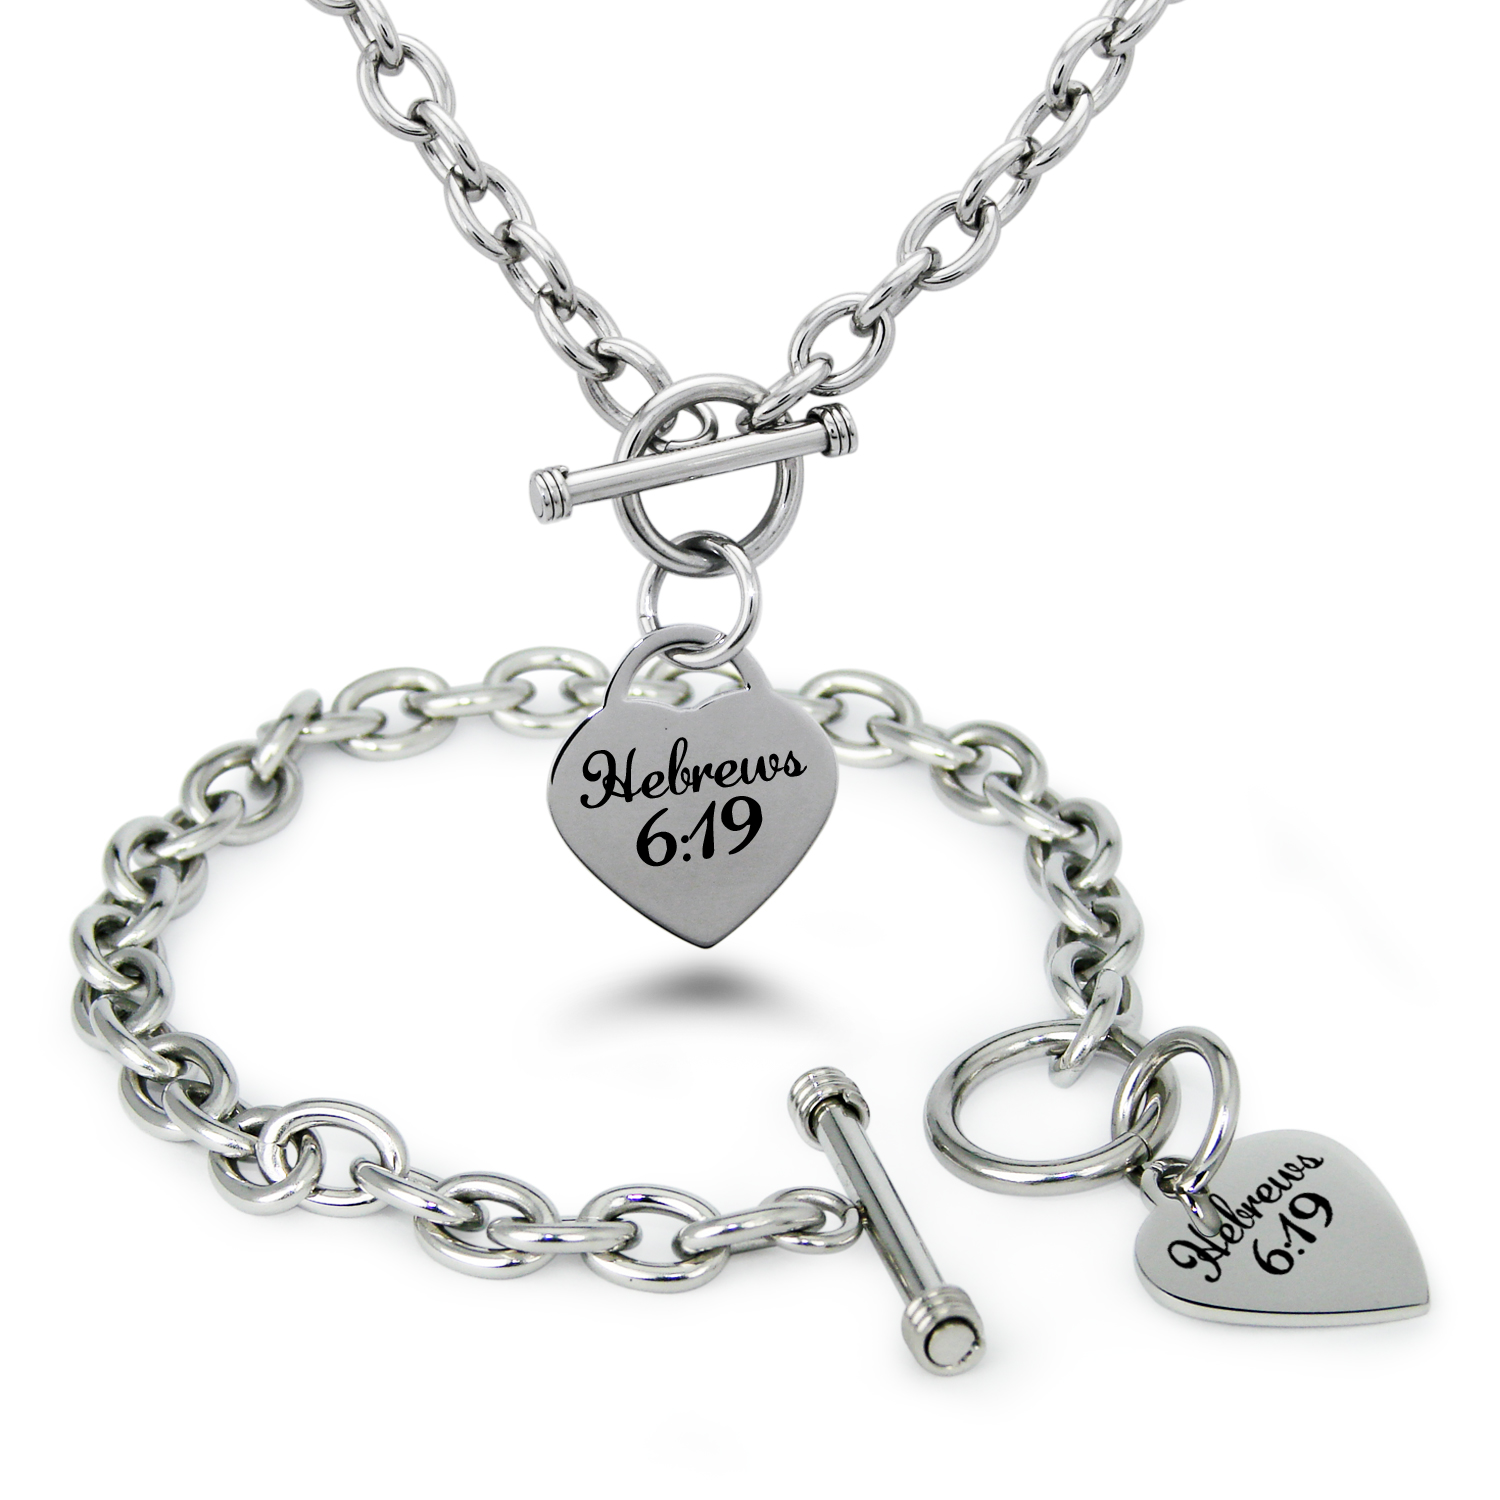 Stainless Steel Hebrews 16:9 Bible Verse Heart Charm Toggle Bracelet & Necklace